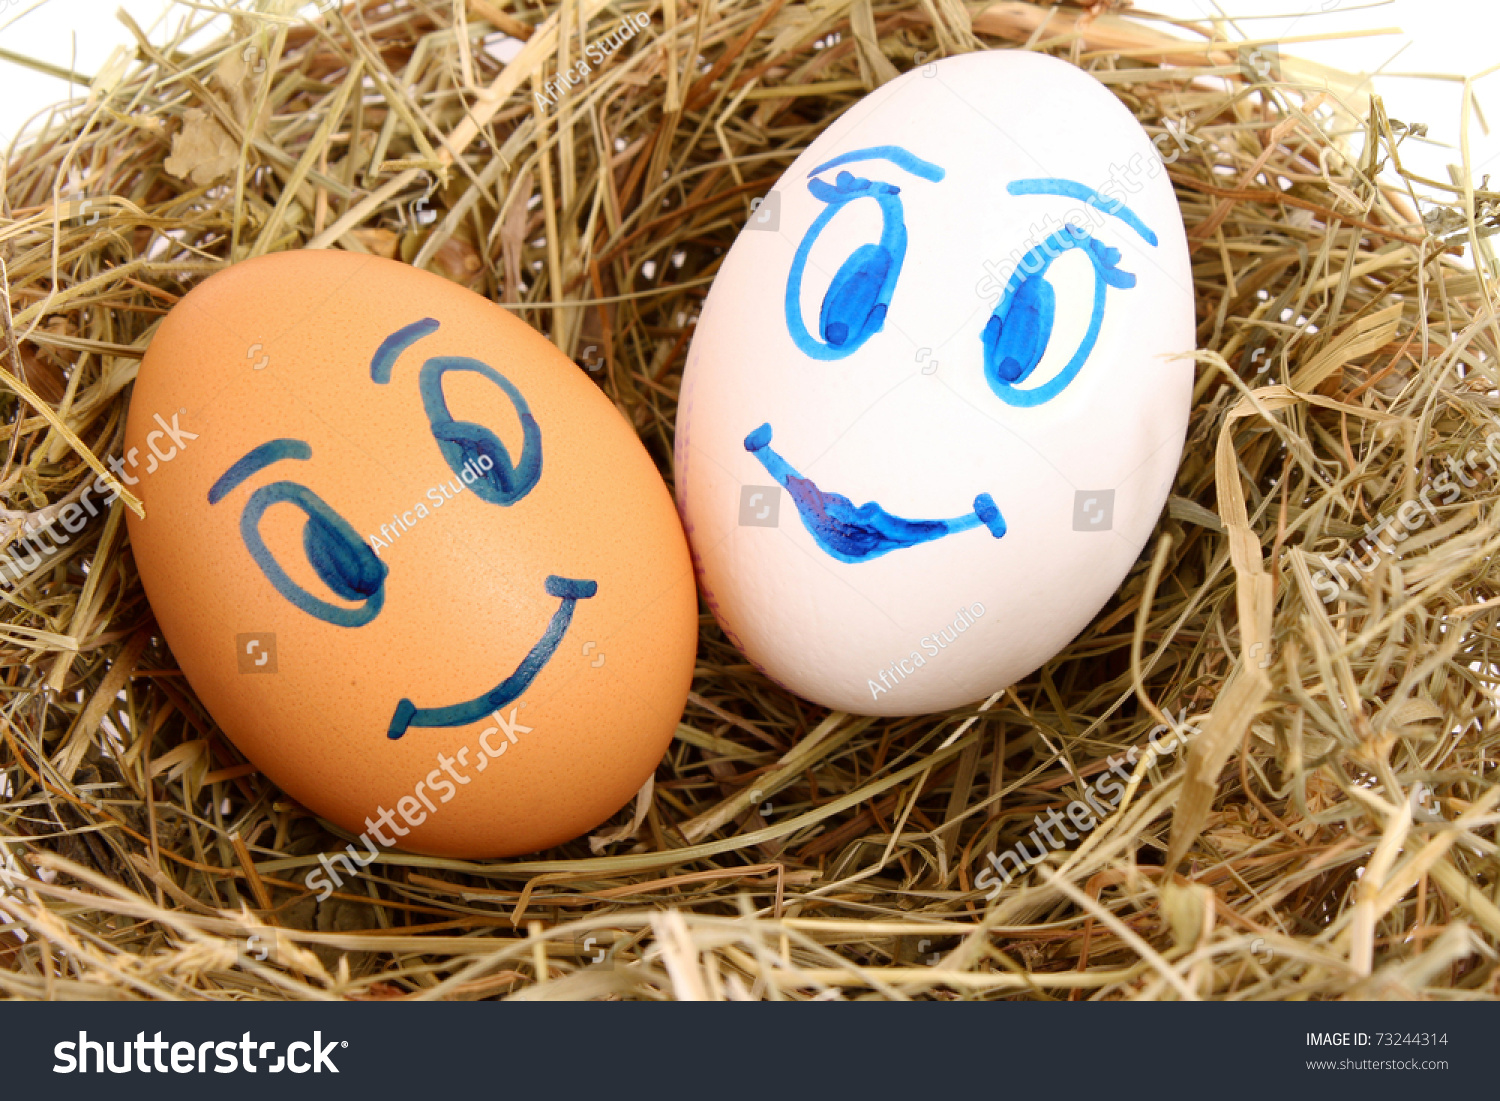 Couple Hens Eggs Faces Grassy Nest Stock Photo Royalty Free 73244314